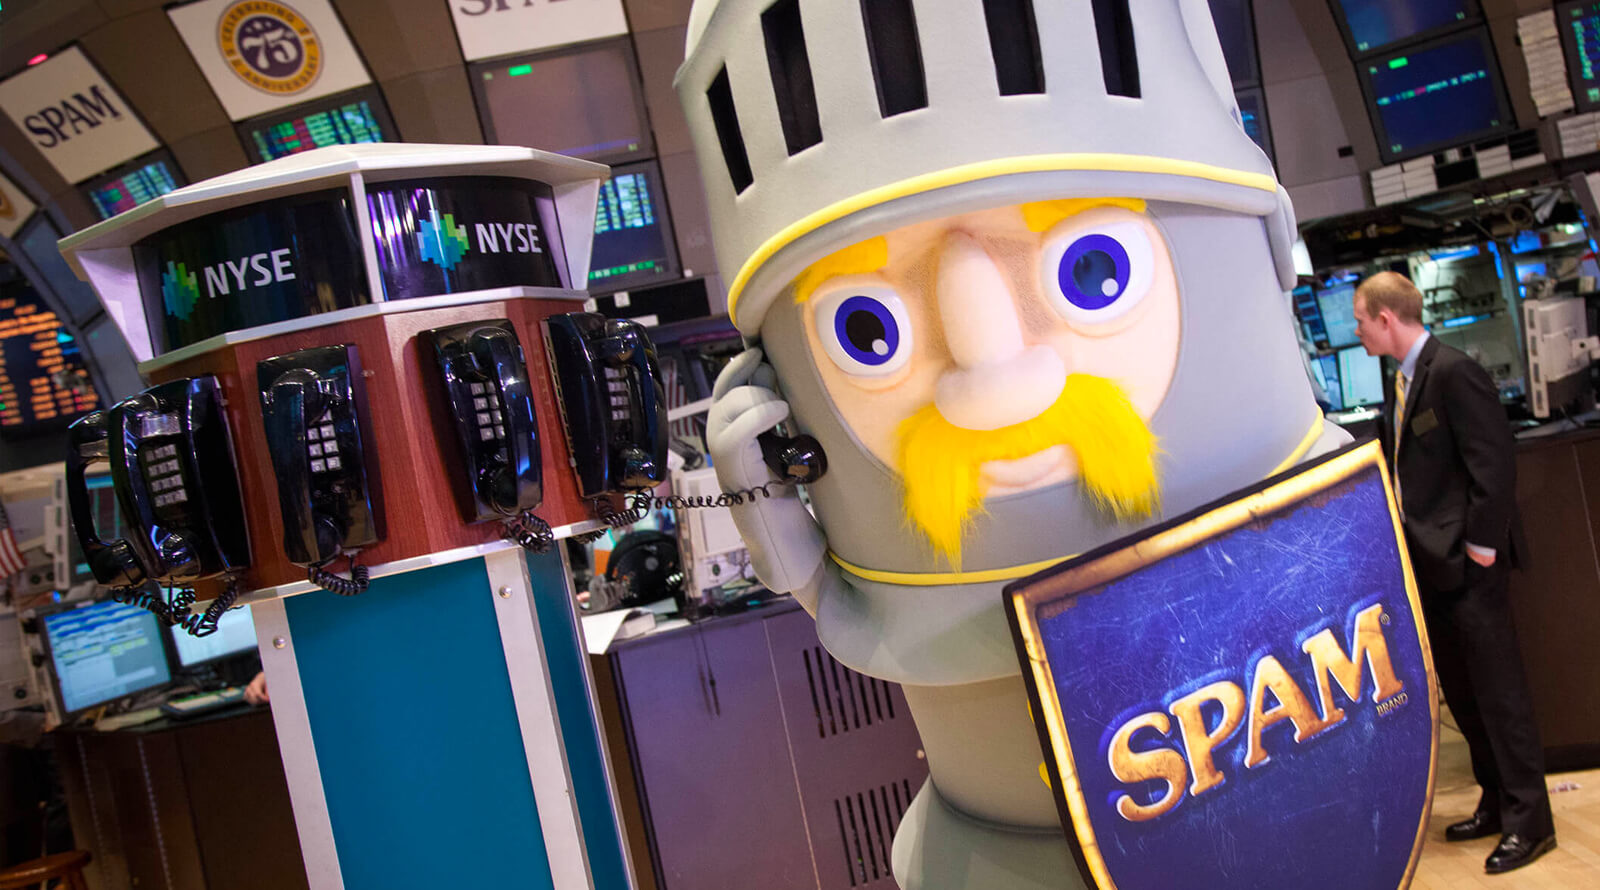 Sir Spam A Lot answering a phone at the NYSE